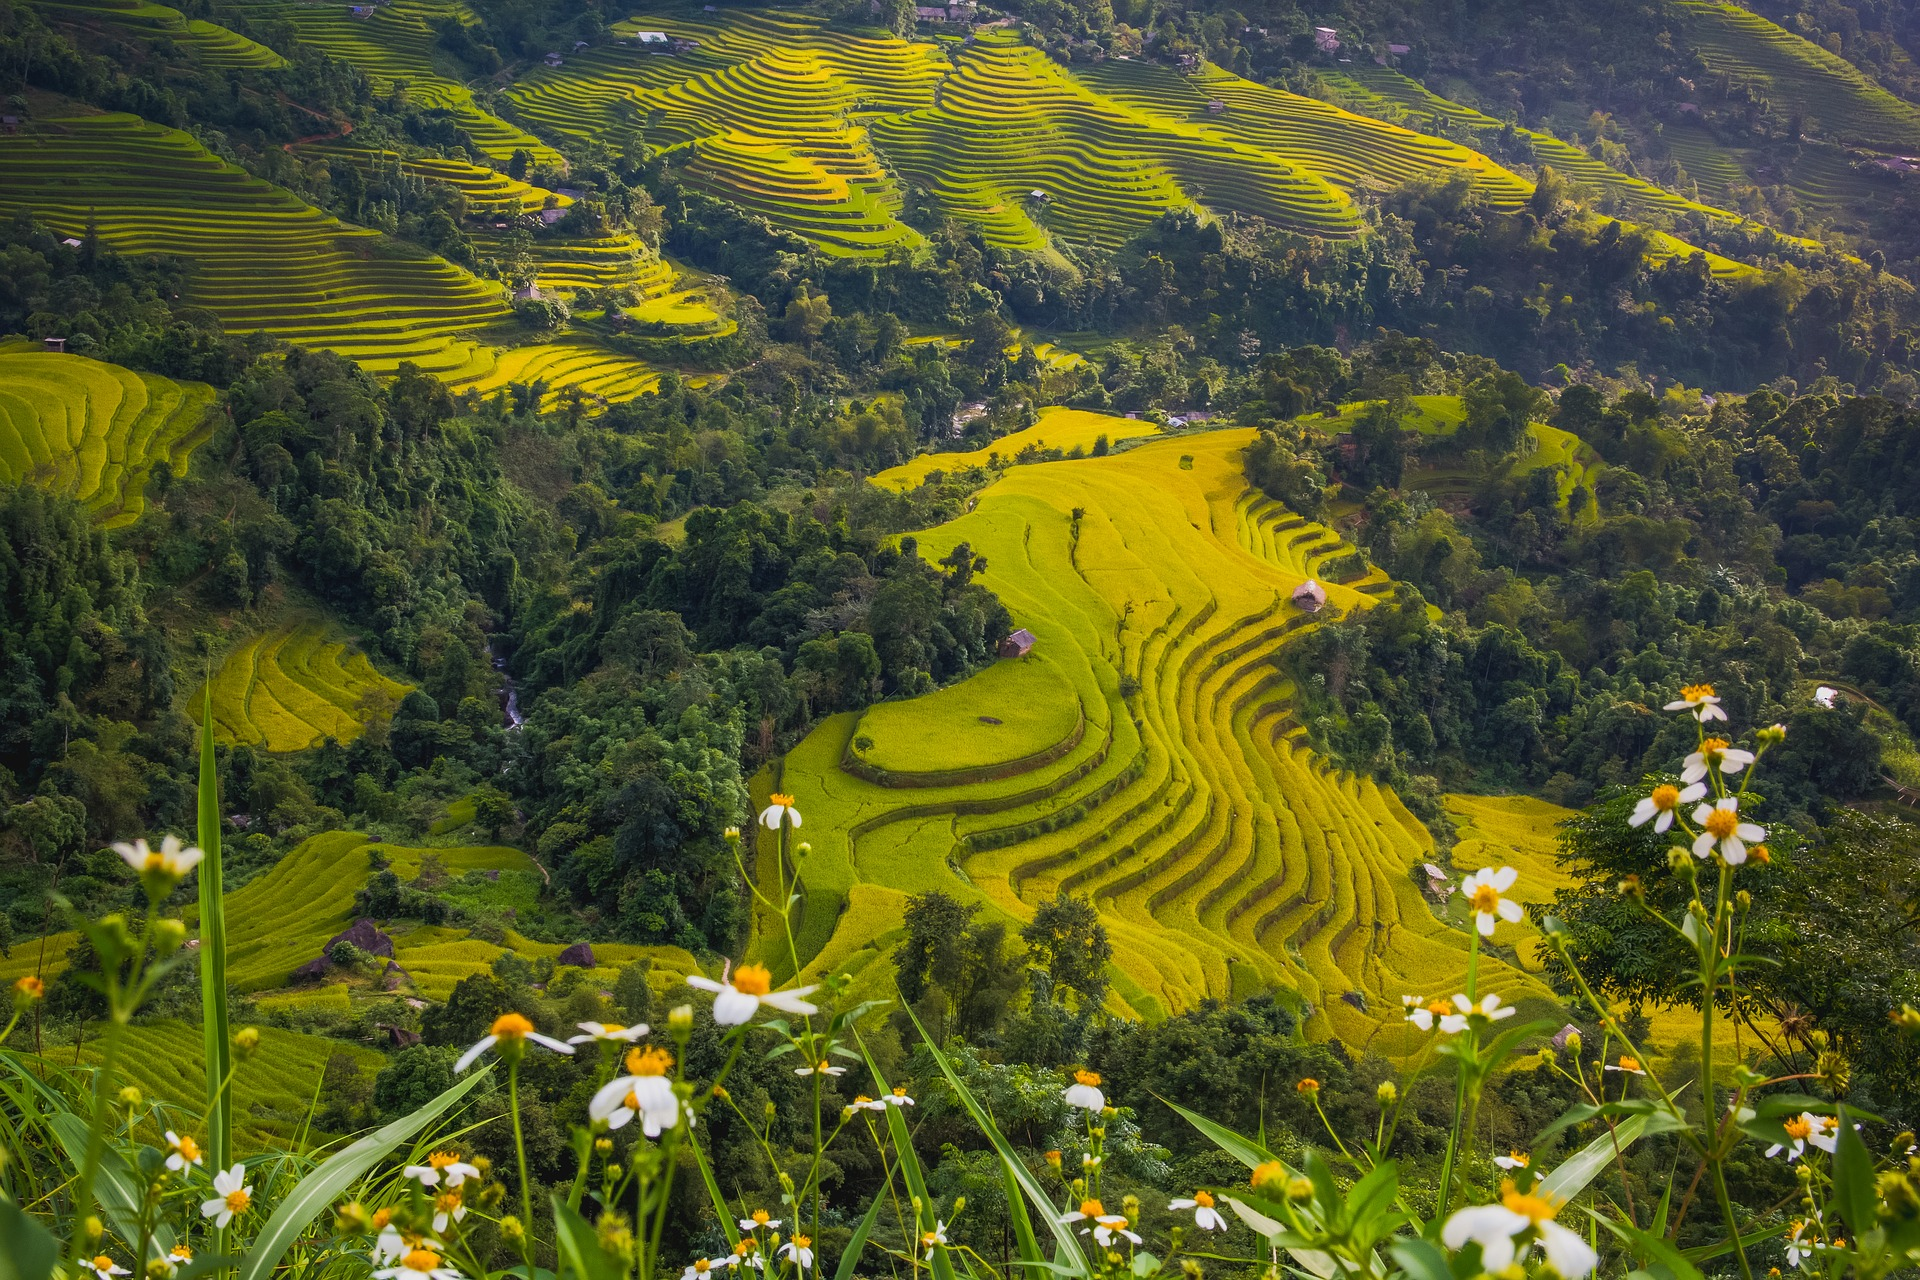 Terraced rice paddies at the side of a hill